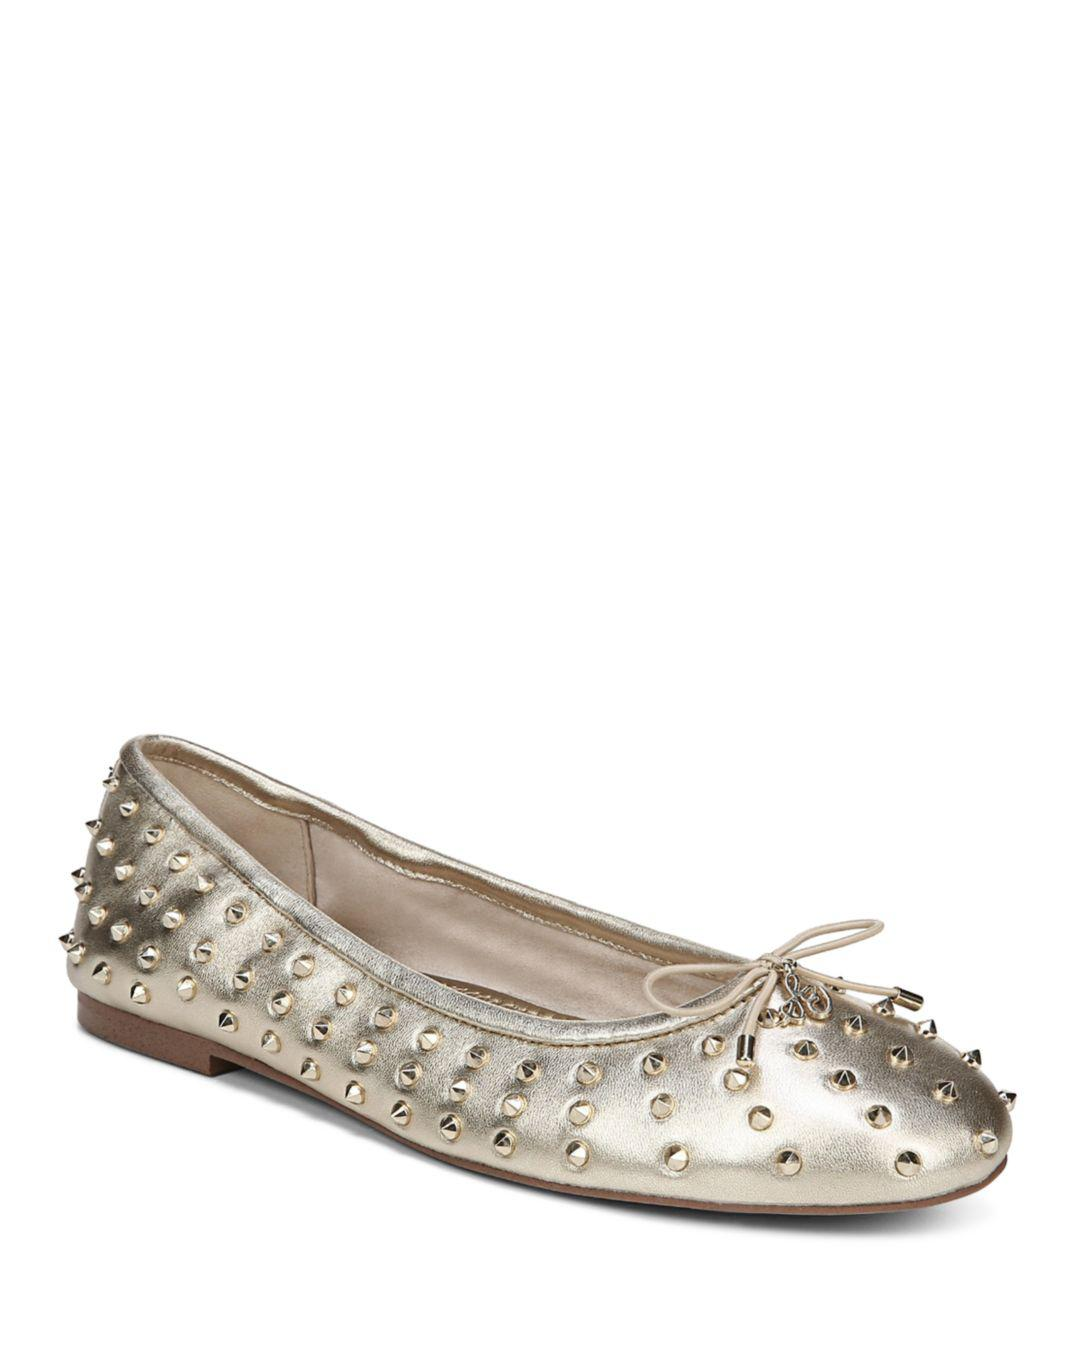 4c01e6088c9e Lyst - Sam Edelman Women s Fanley Studded Leather Ballet Flats in ...